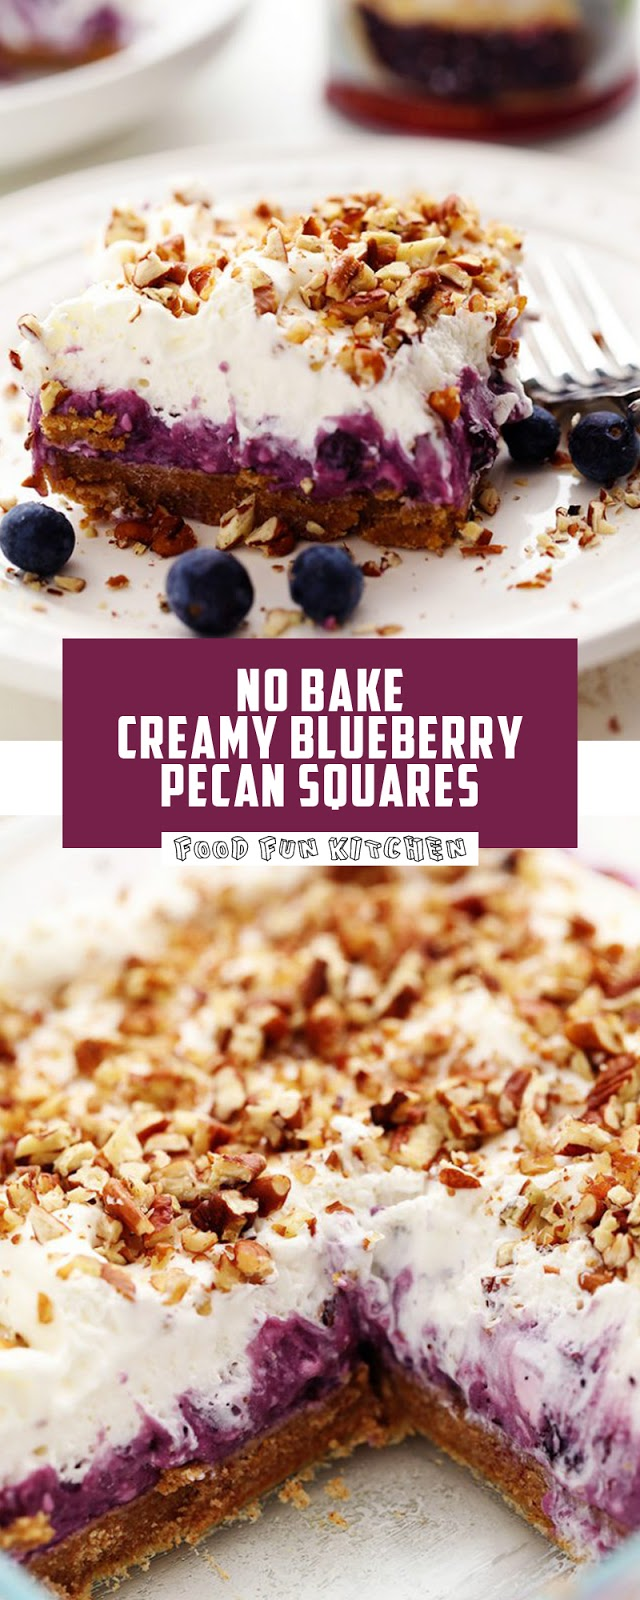 NO BAKE CREAMY BLUEBERRY PECAN SQUARES